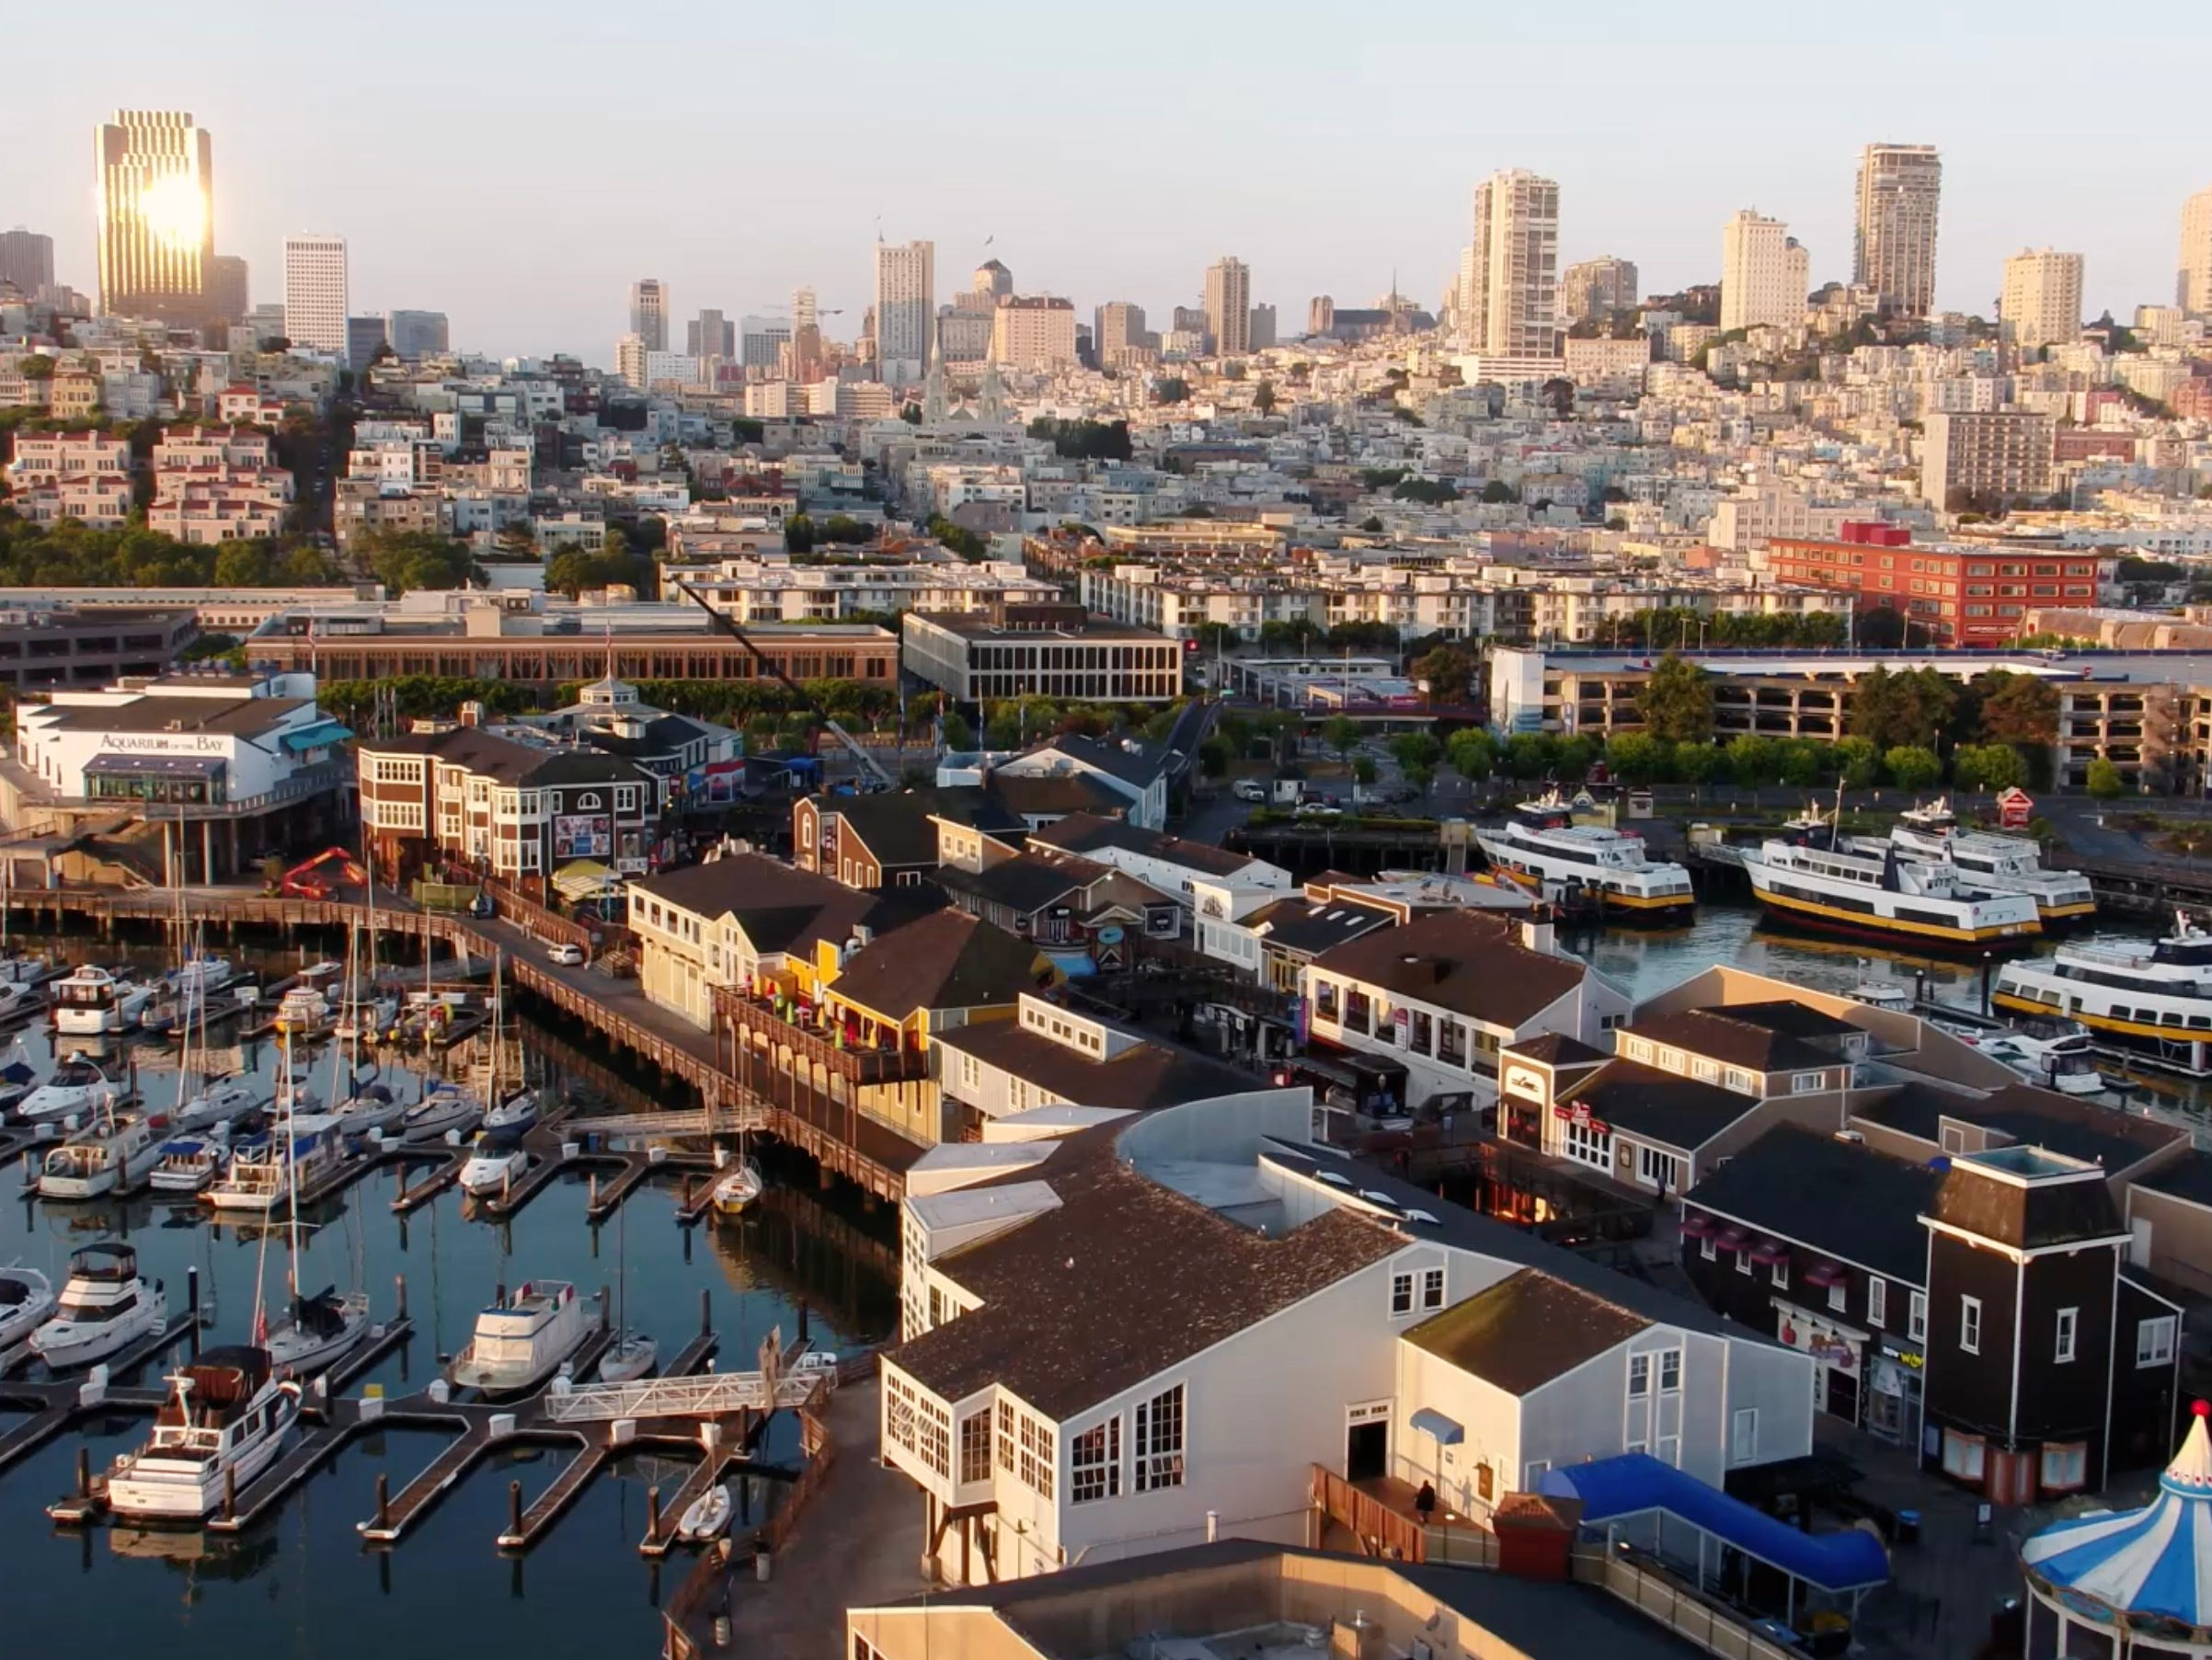 It's a unique and entertaining way to explore places like Coit Tower on Telegraph Hill, the Castro and Alcatraz while also enjoying some mild thrills.